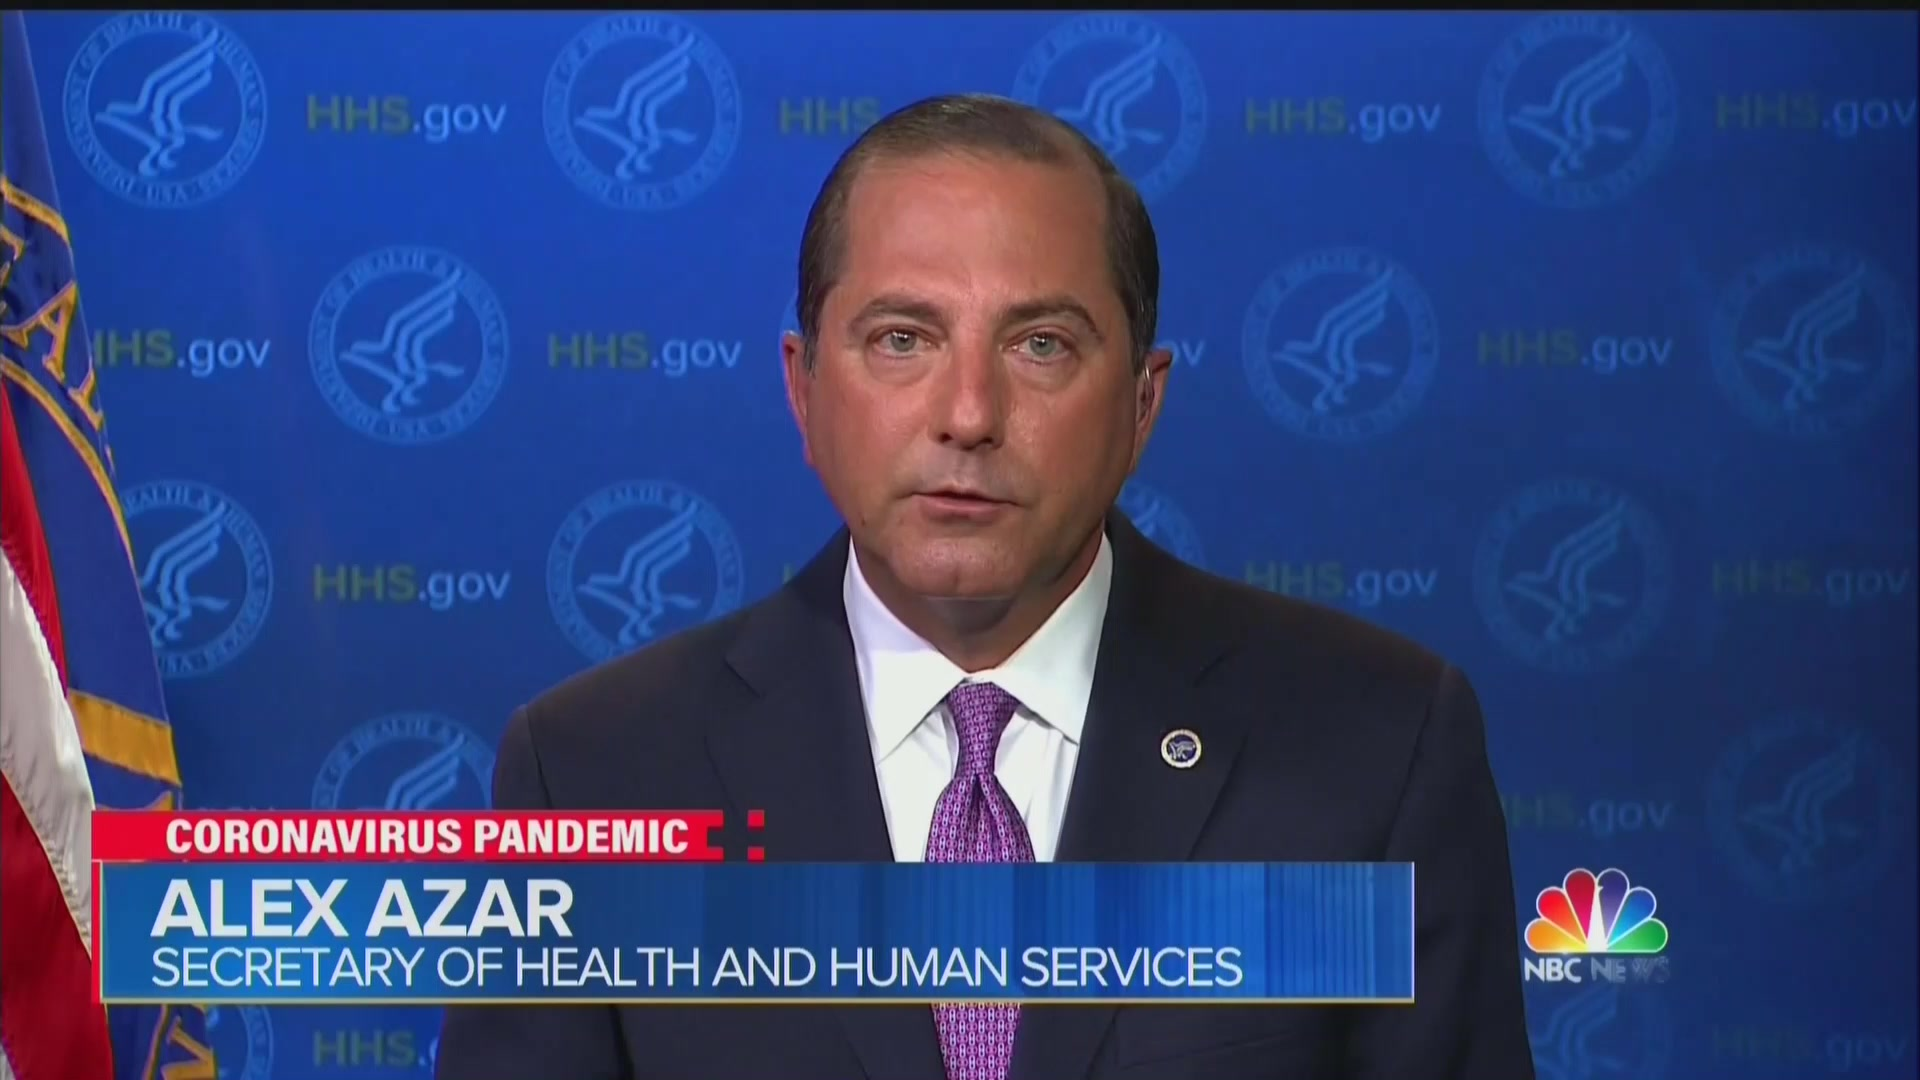 Alex Azar Struggles to Explain Discrepancy Between Trump and Health Officials on Mask Wearing